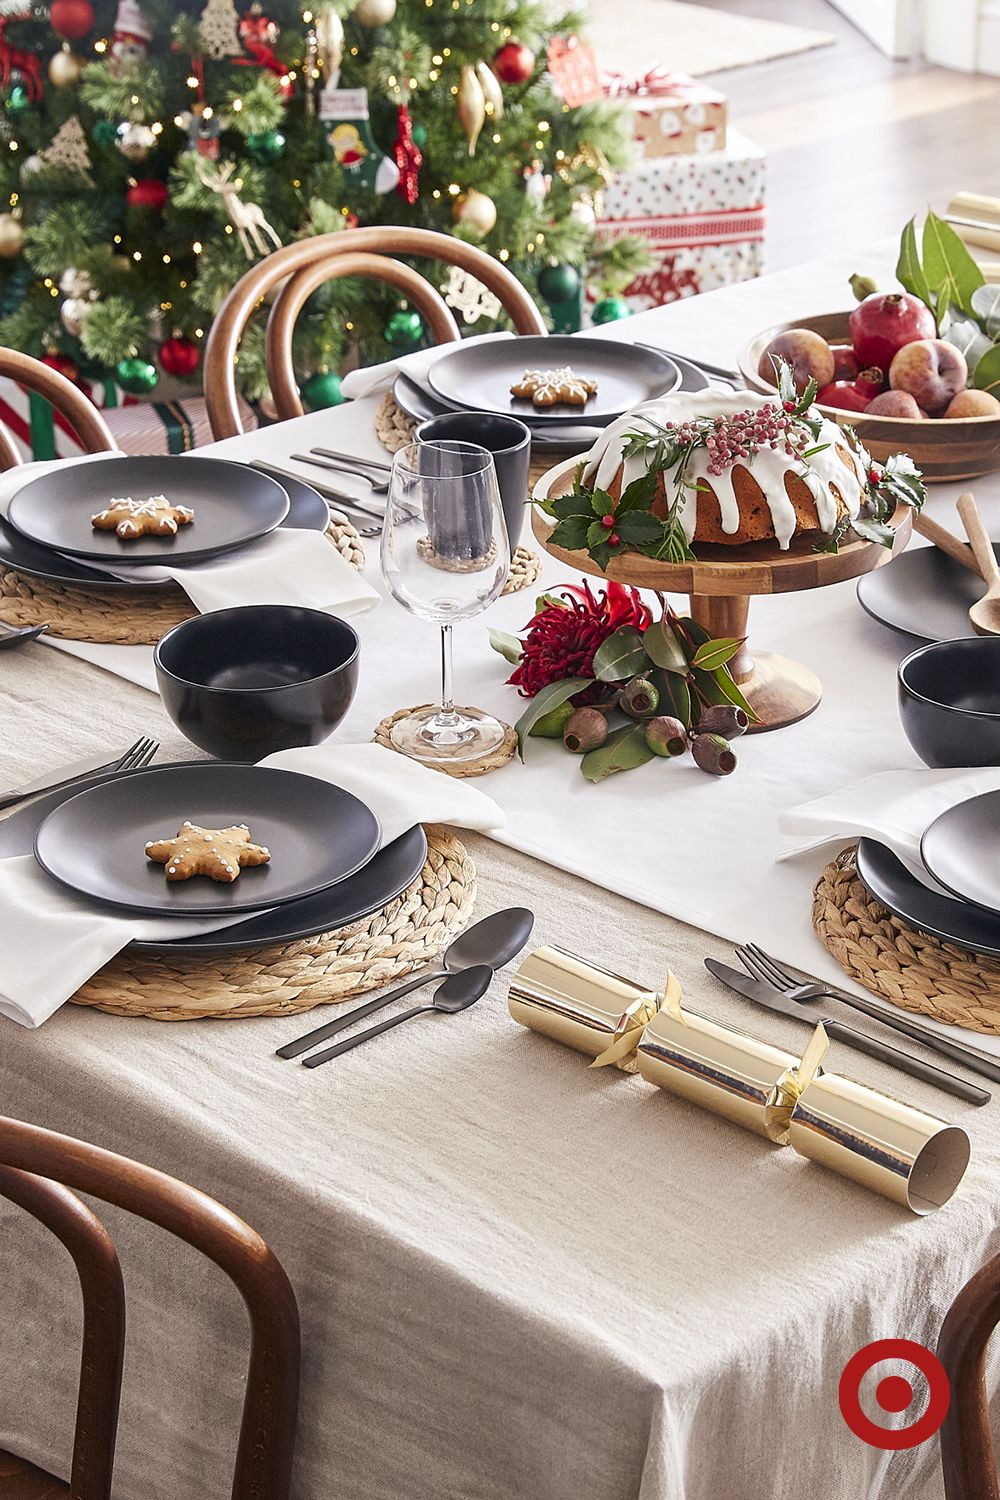 This Distinct And Sophisticated Semi Gloss Black 21cm Coupe Side Plate Is A Clean And Contemporar Christmas Dinner Plates Christmas Dining Australian Christmas